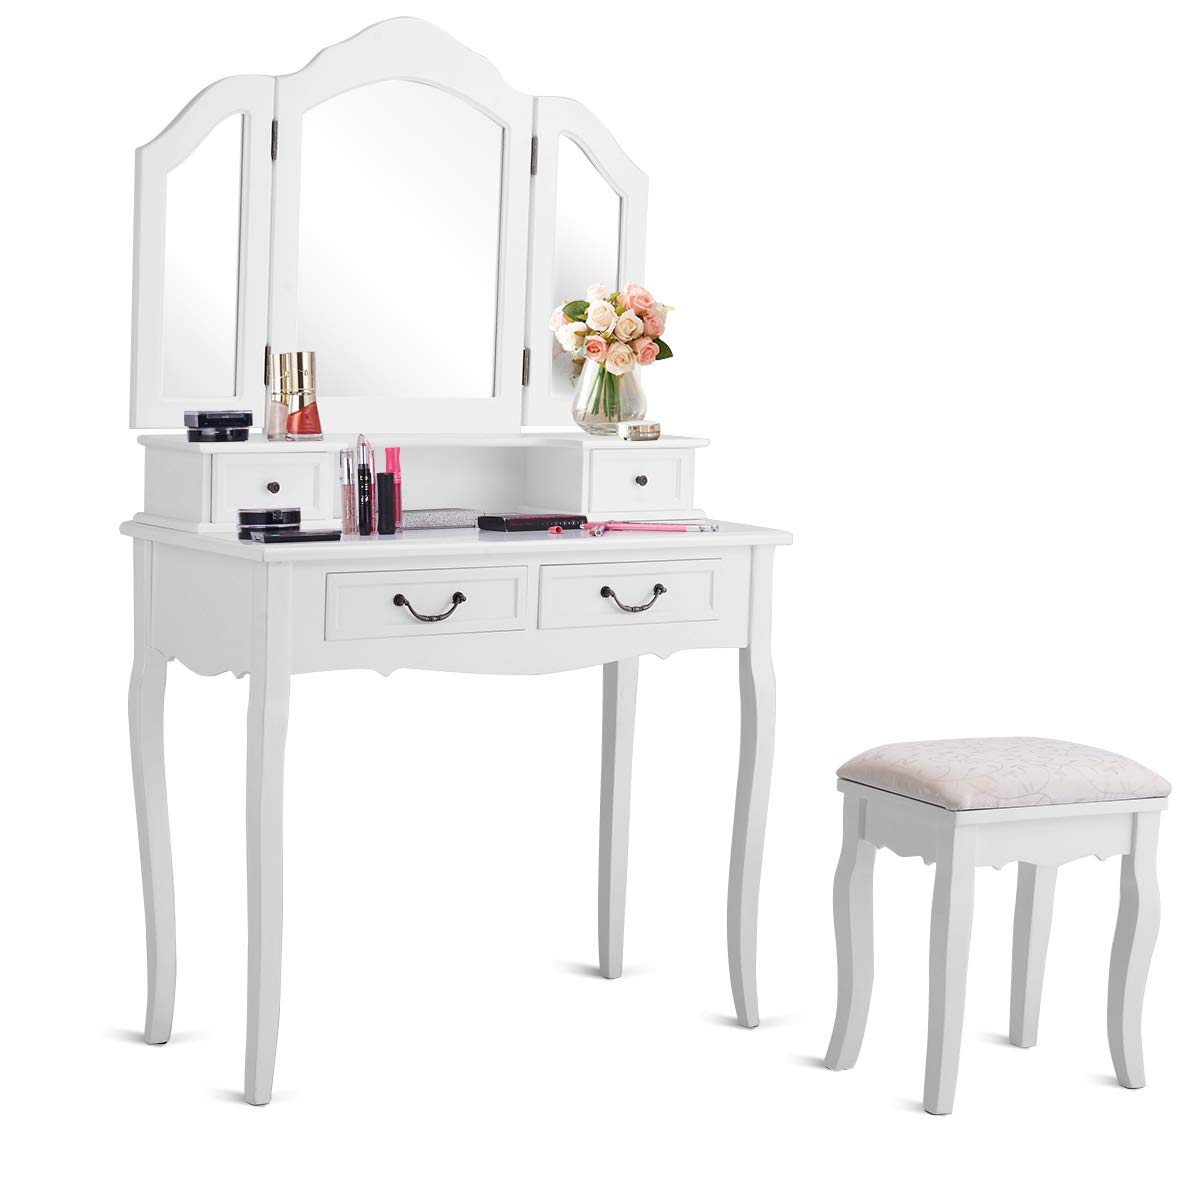 CHARMAID Vanity Set with Tri-Folding Mirror and 4 Drawers, Makeup Dressing Table with Cushioned Stool, Makeup Vanity Set for Women Girls Bedroom, Makeup Table and Stool Set (White) by CHARMAID